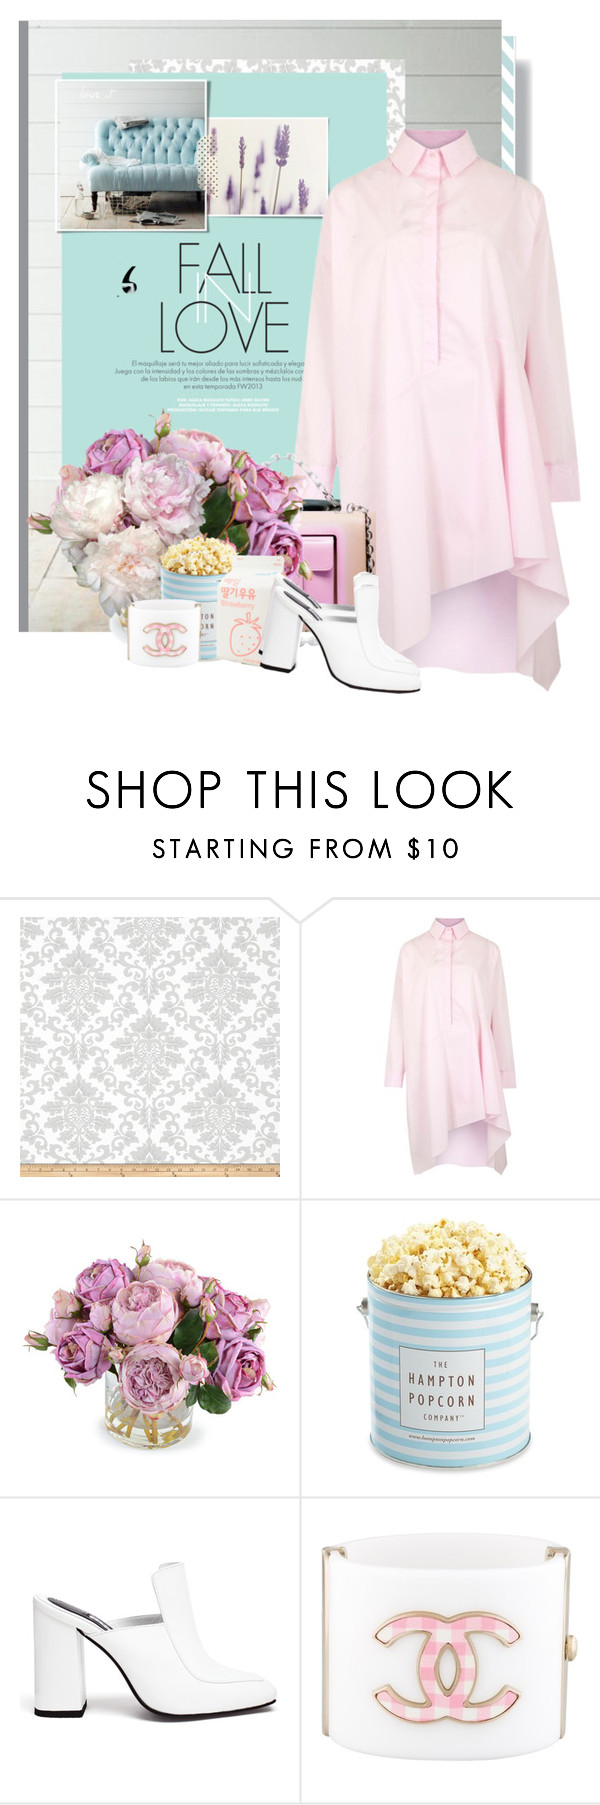 """FALL IN LOVE"" by it-is-just-me ❤ liked on Polyvore featuring Haze, Marques'Almeida, New Growth Designs, The Hampton Popcorn Company, Dorateymur and Chanel"